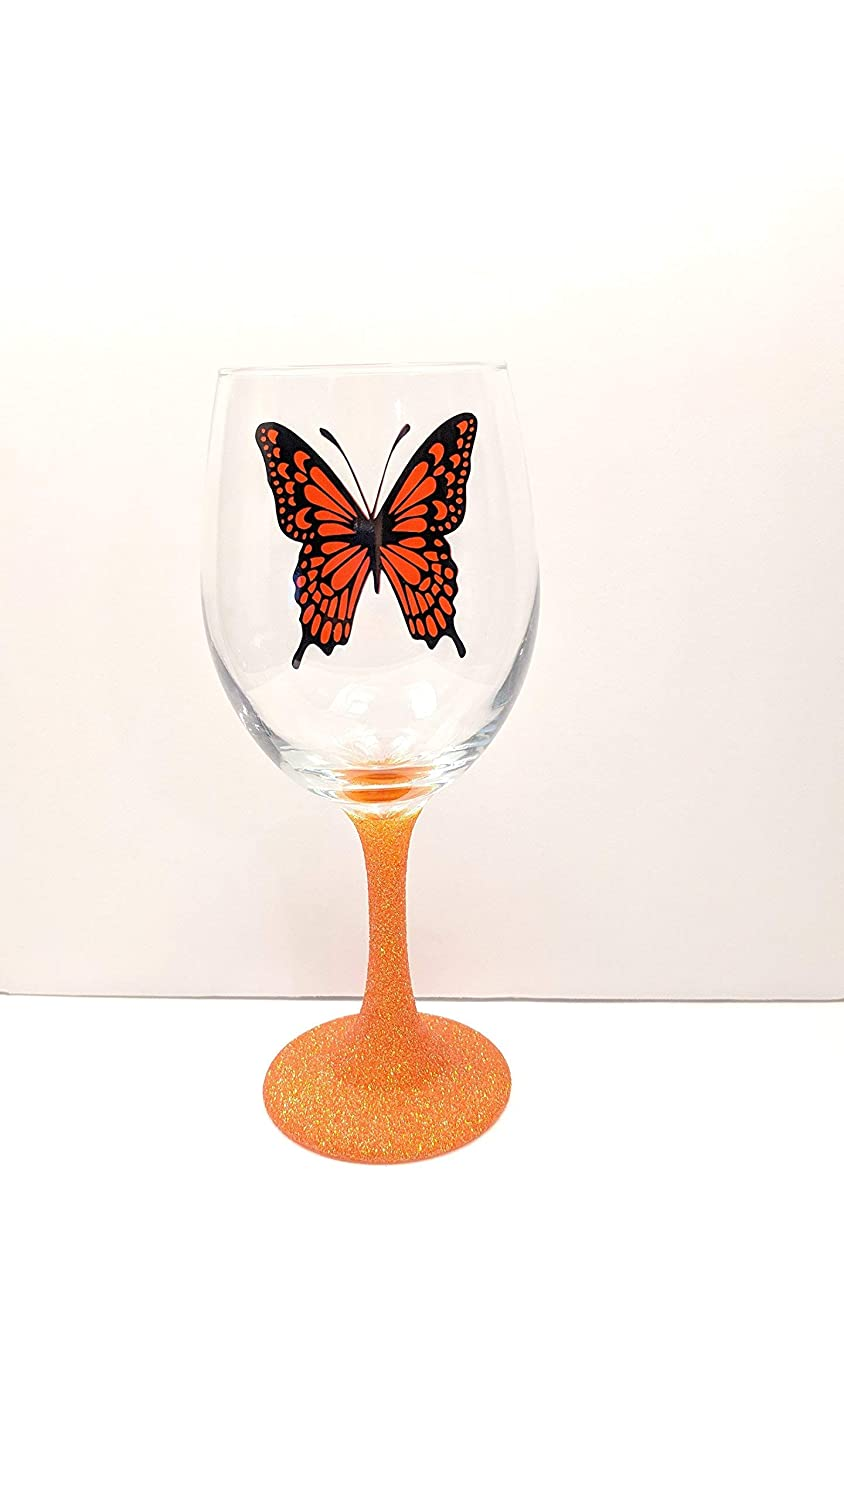 Butterfly Glass Monarch Gift Butterfly Decor Monarch Butterfly Glitter Stem Or Stemless Wine Glass Wine Glass With Butterfly Butterfly Gift Butterfly Gift Butterfly Wine Glass